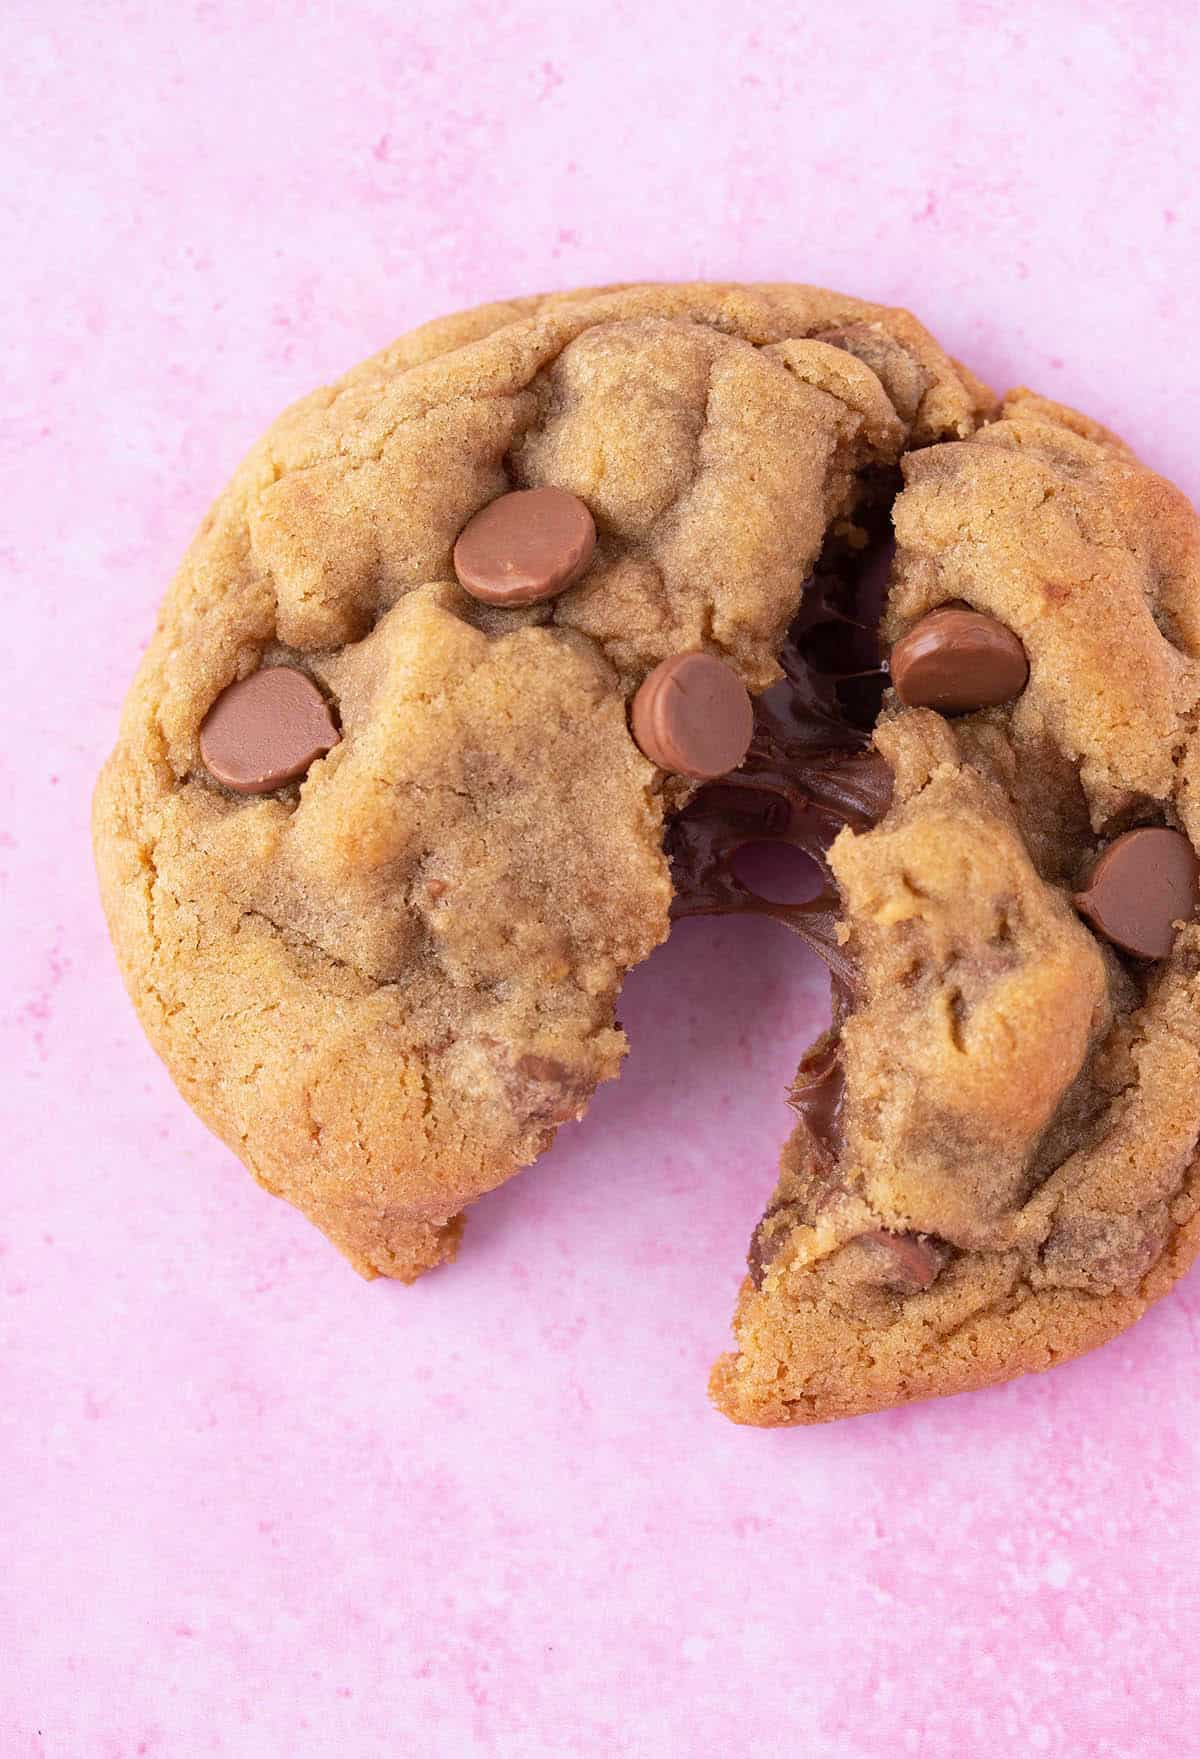 Close up of a Nutella Stuffed Cookie on a pink background